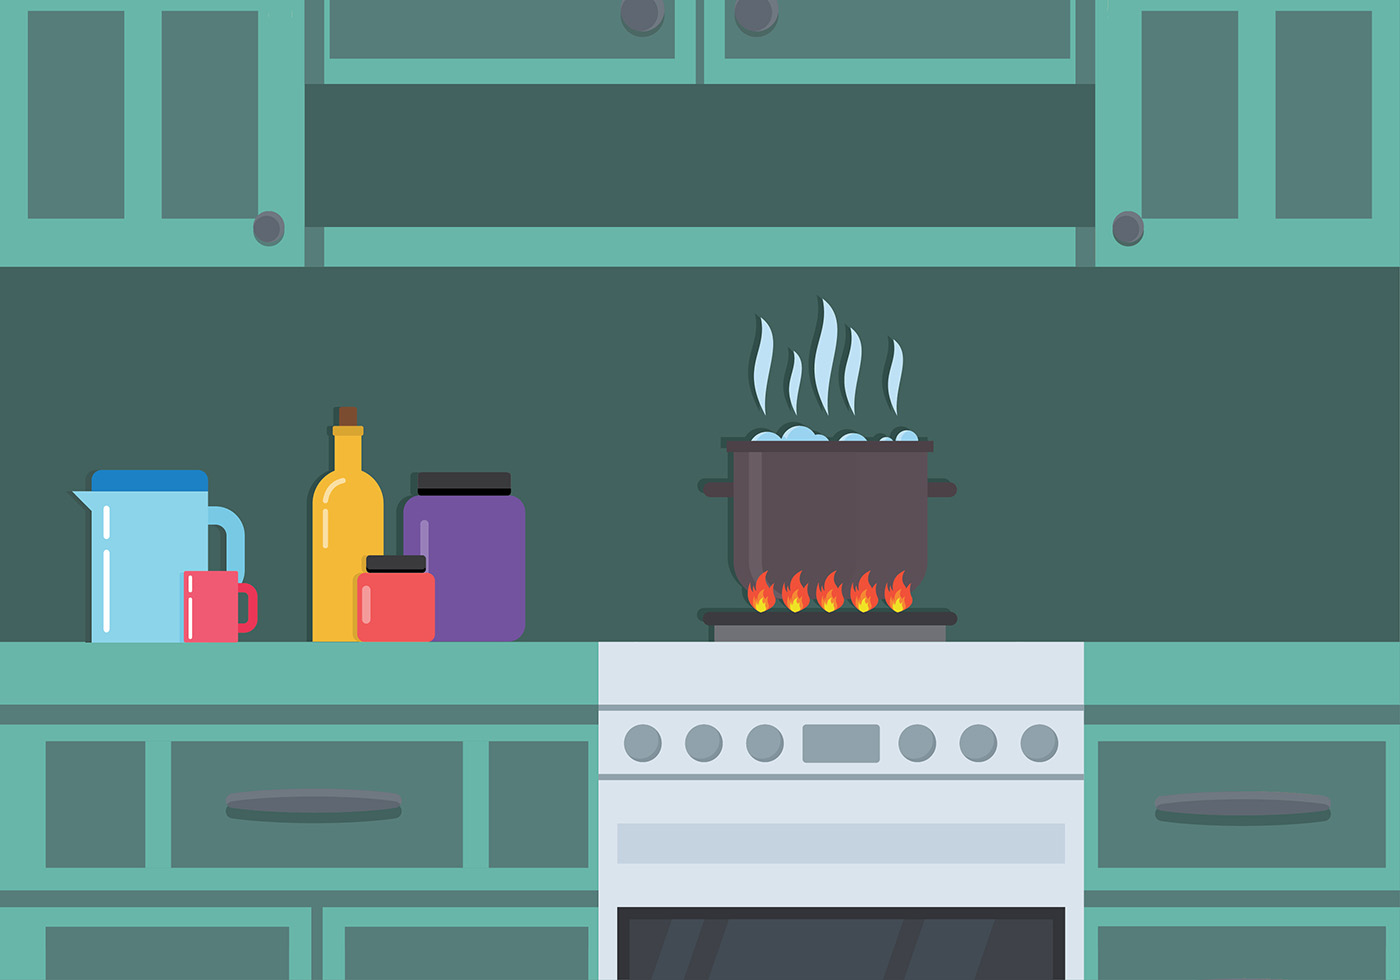 Boiling Water In Kitchen Free Vector Download Free